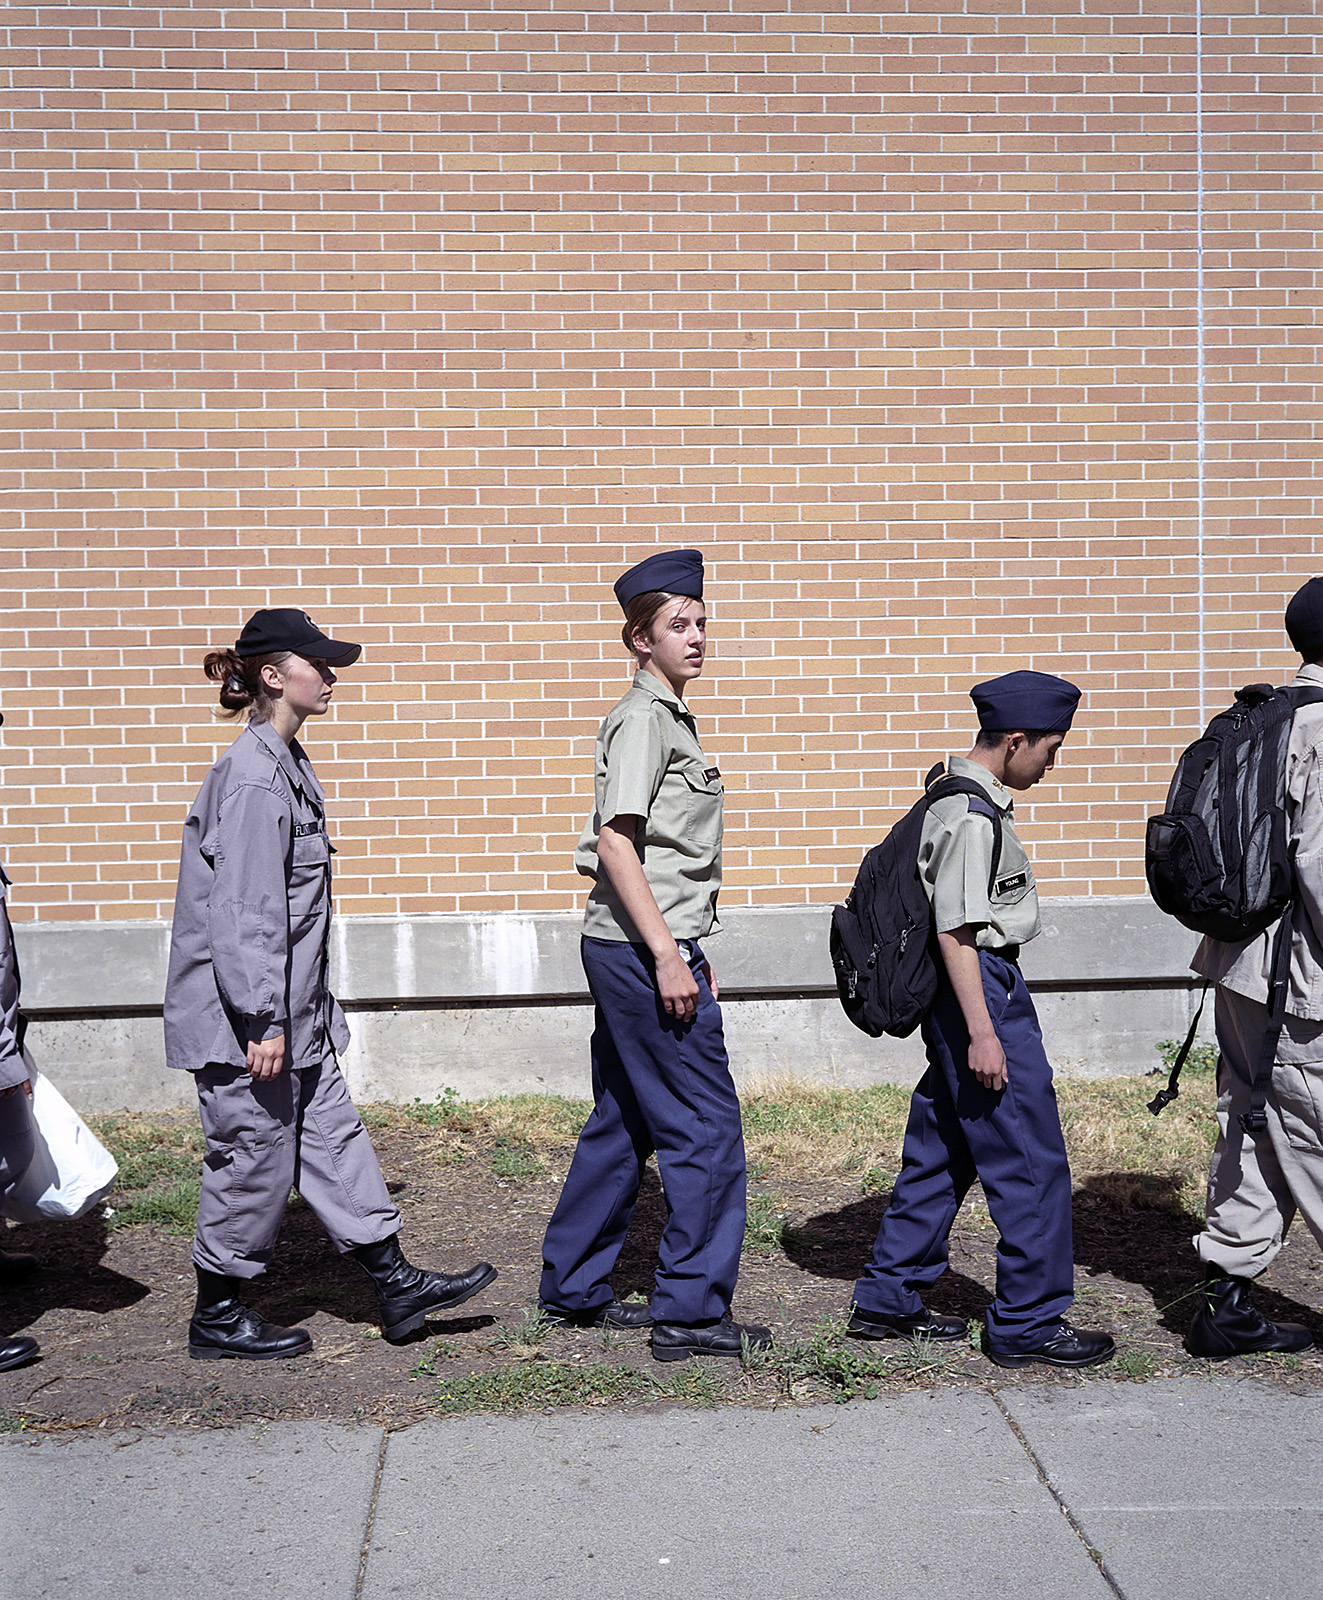 Cadets of the Oakland Military Institute, for Der Spiegel, 2004